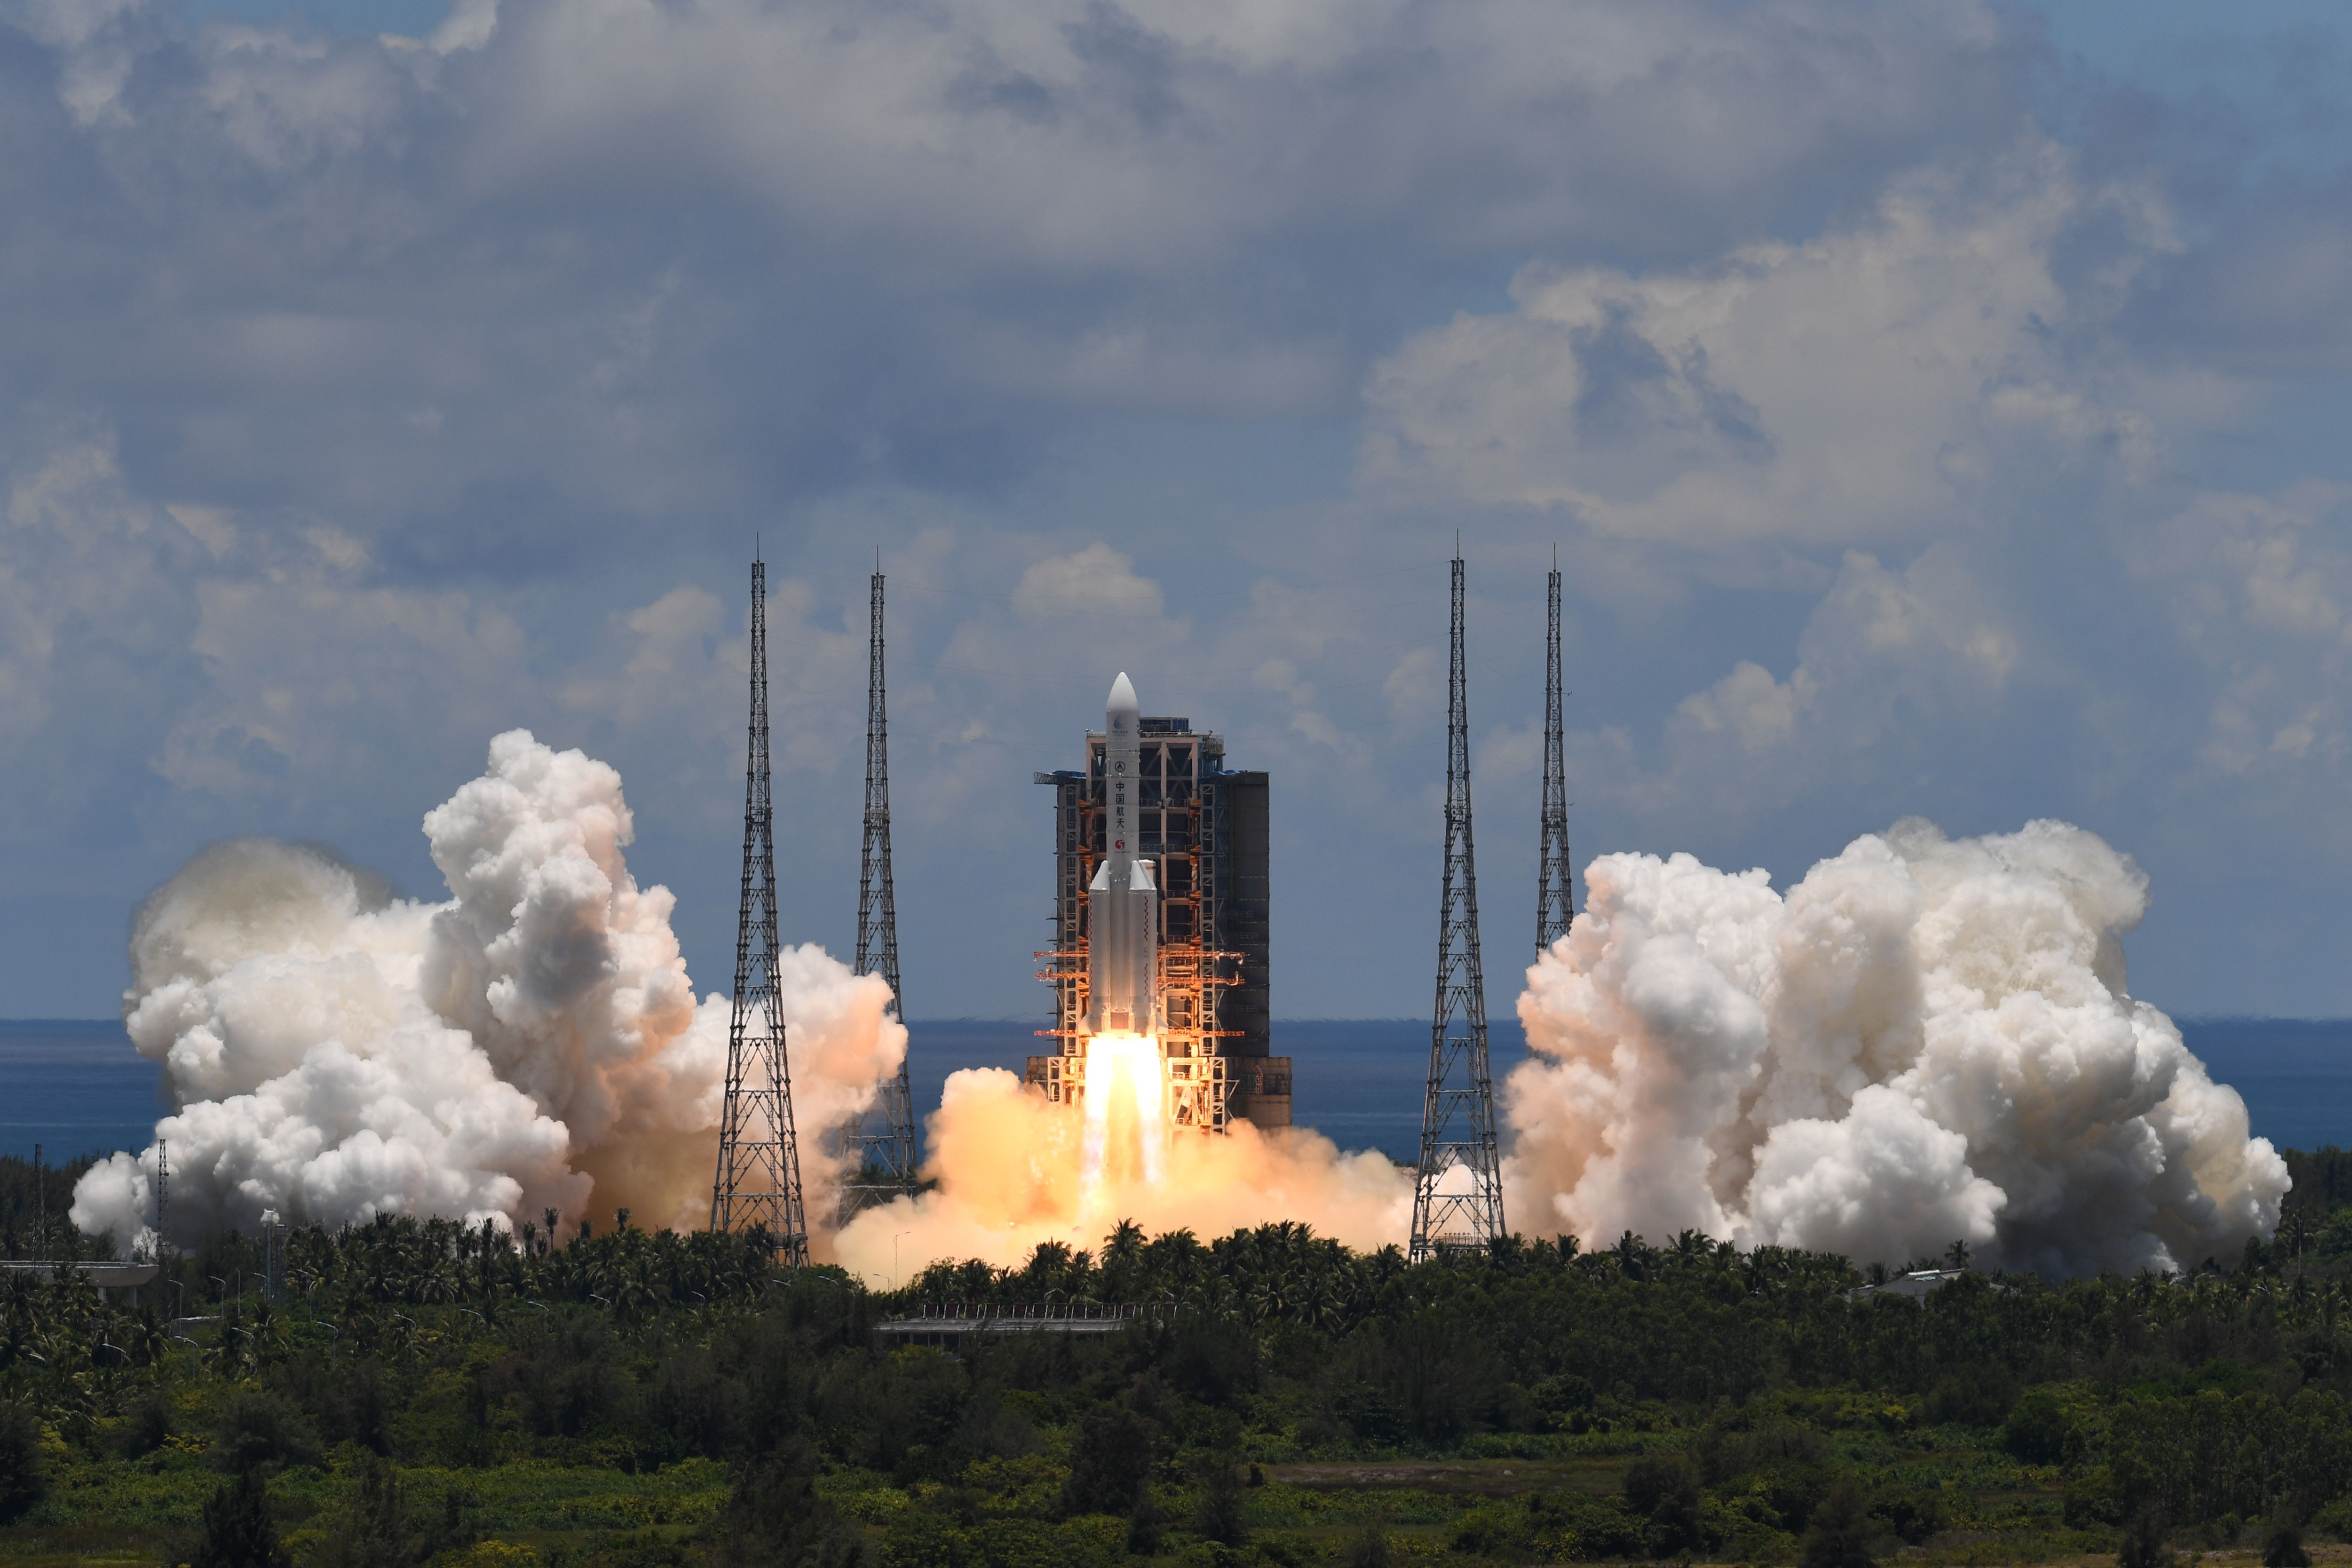 A Long March-5 rocket, carrying an orbiter, lander and rover as part of the Tianwen-1 mission to Mars, lifts off from the Wenchang Space Launch Centre in southern China's Hainan Province on July 23, 2020.